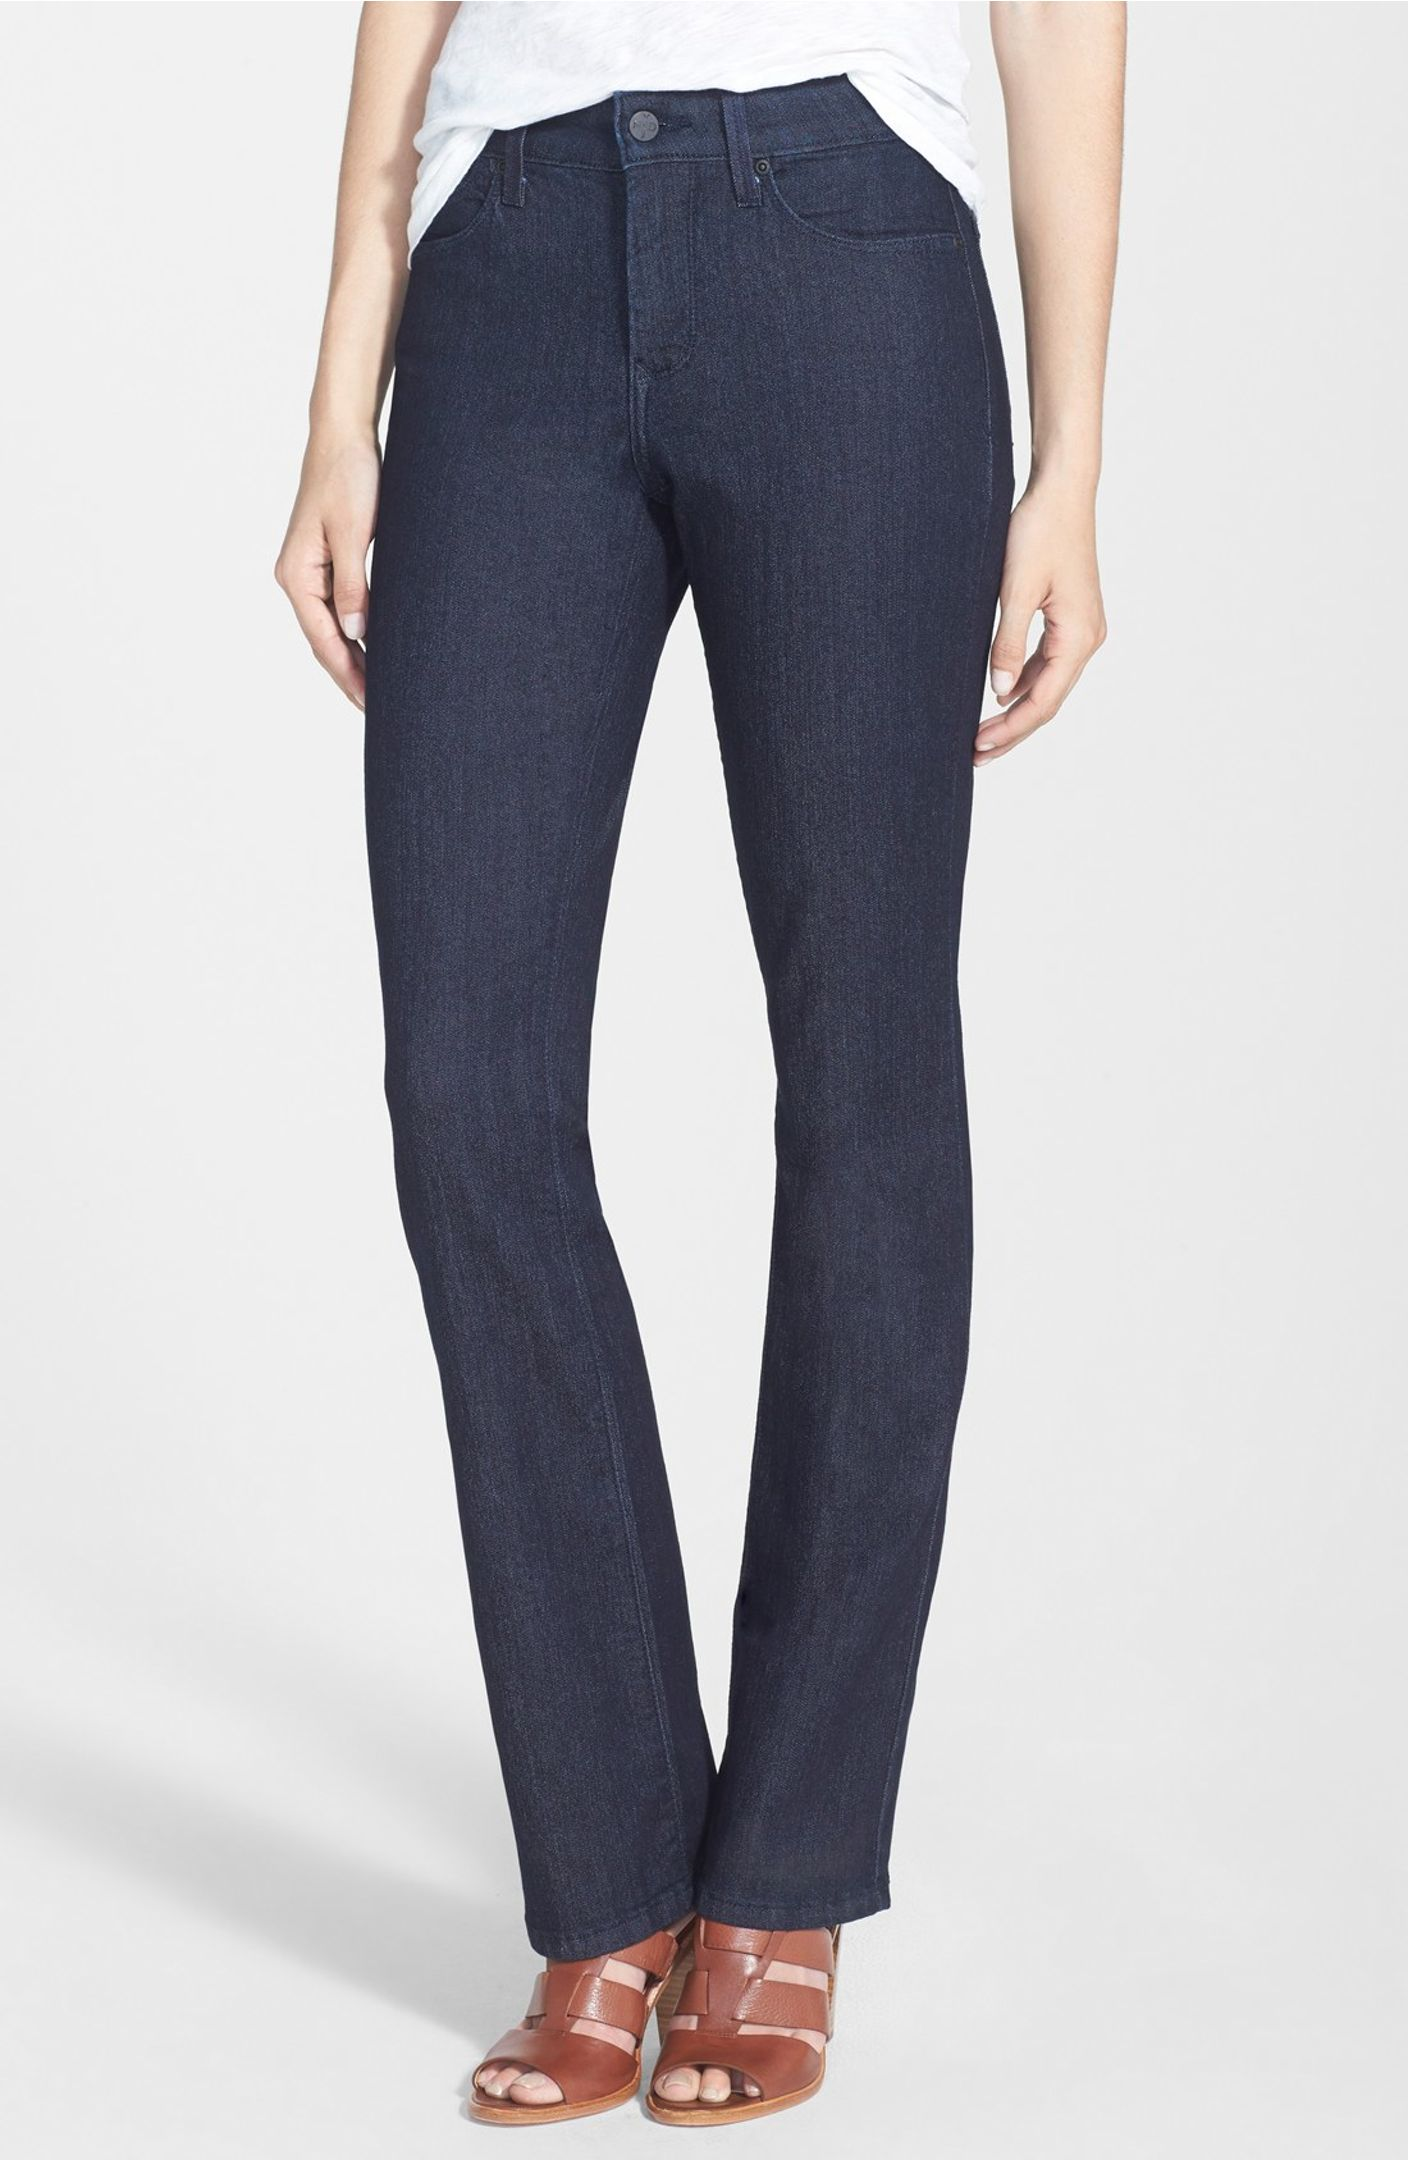 What Stores Sell High Waisted Jeans - Xtellar Jeans